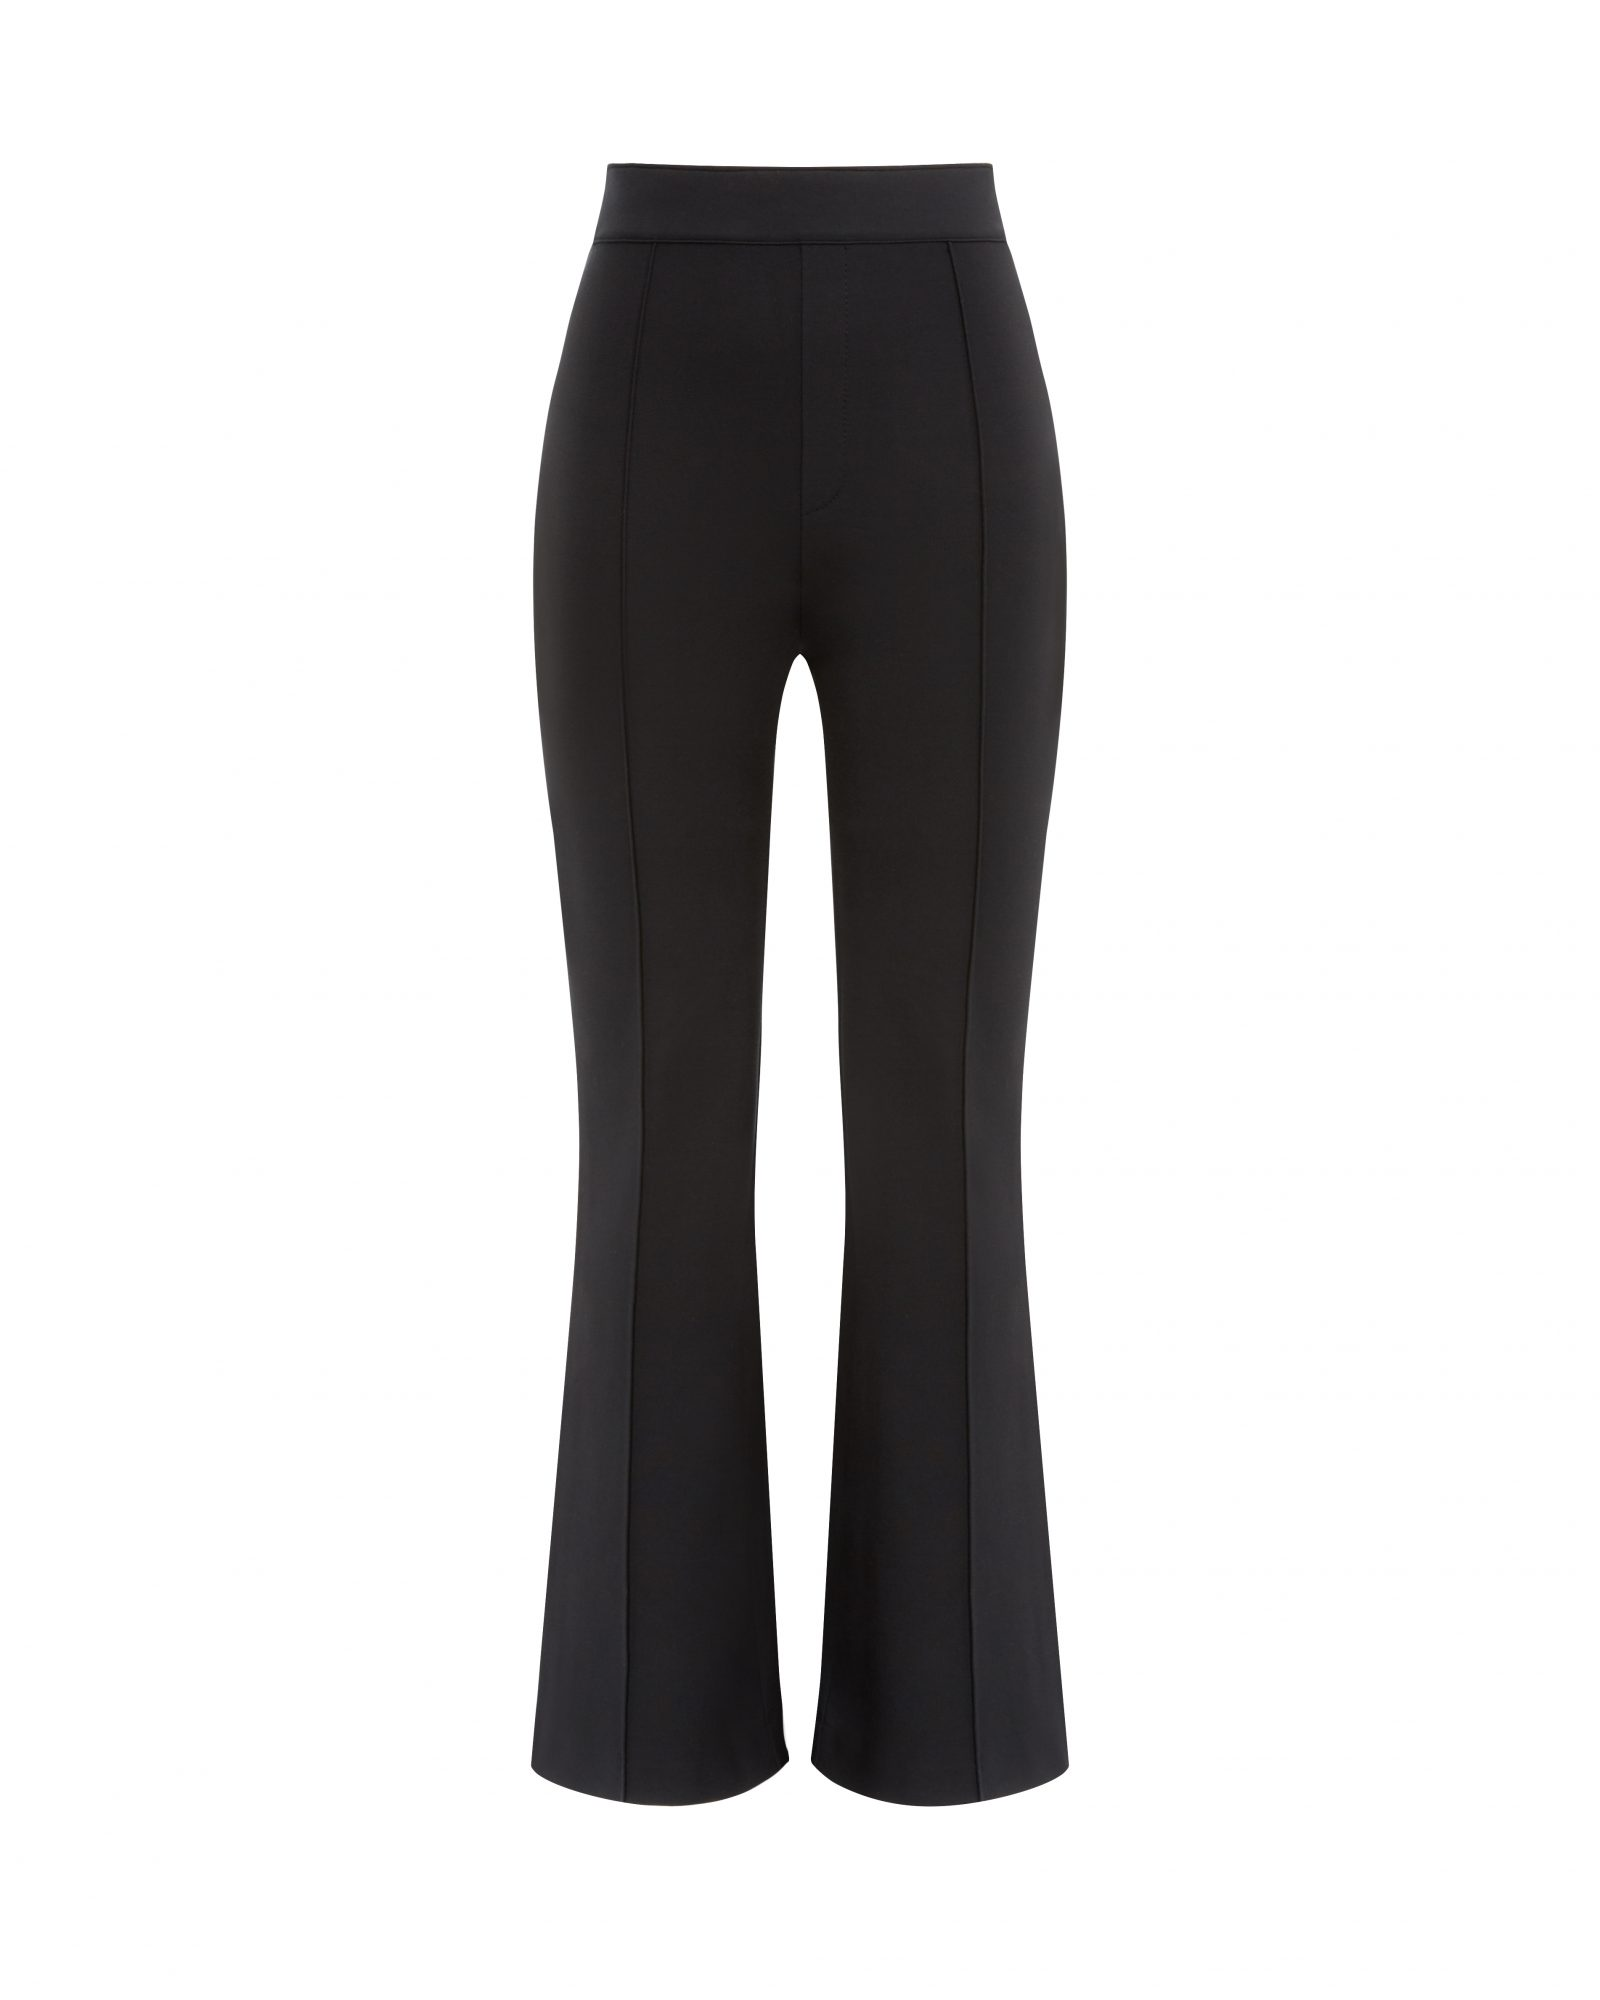 The New Spanx Trousers Are So Fancy, Nobody at Work Realized I Was Basically Wearing Leggings